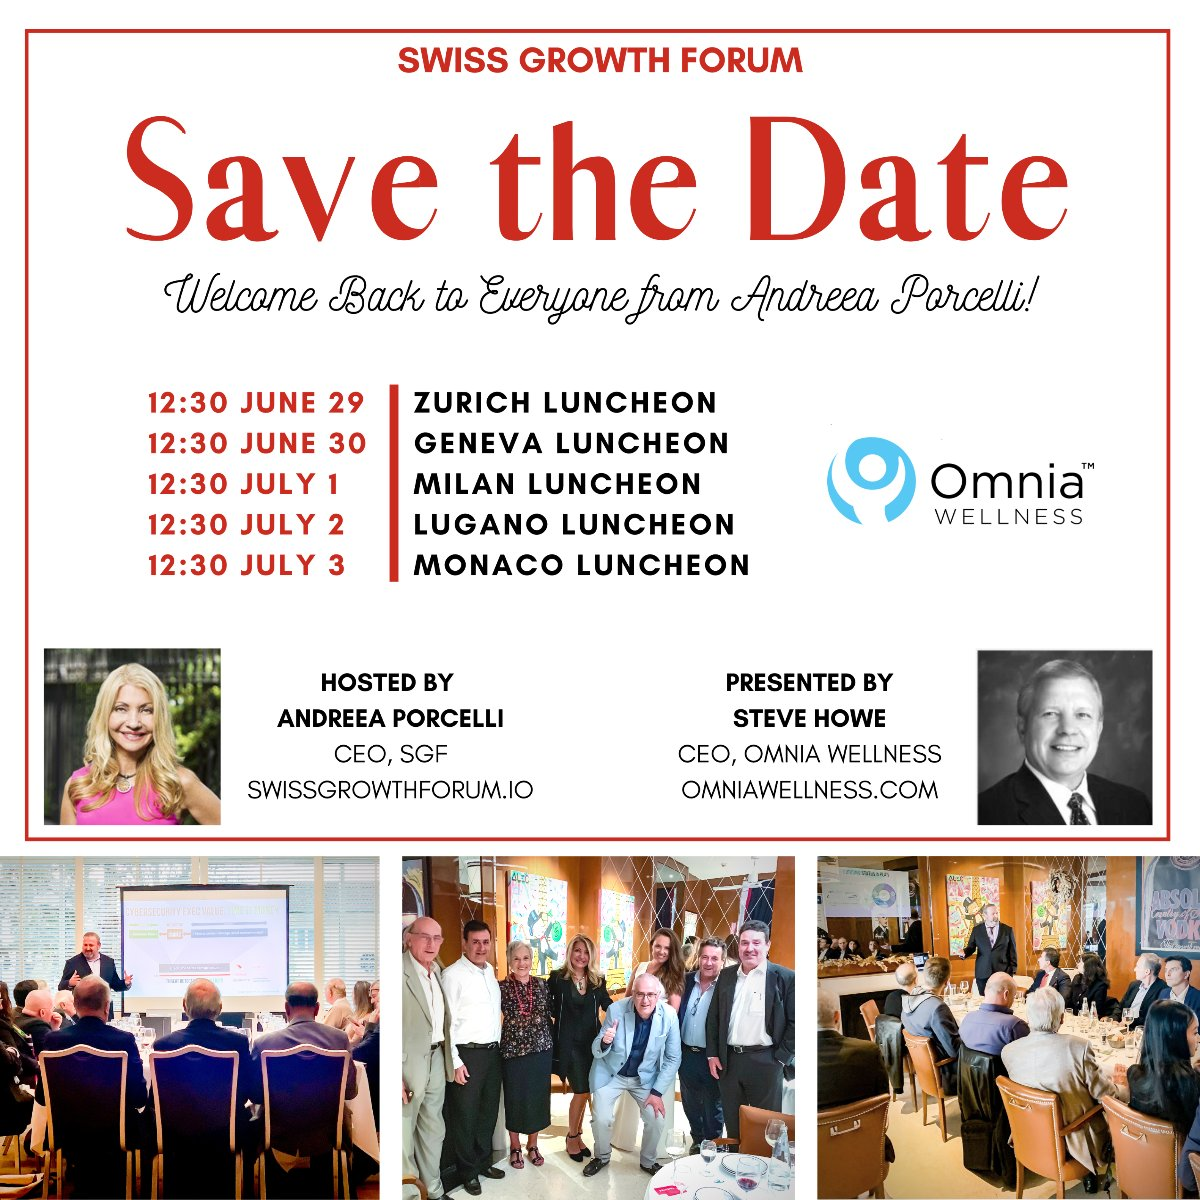 Omnia Wellness Announces Intent to Dual List on OTC #Nasdaq and Euronext by August; Join Us for their EU roadshow from 29/6 - 3/7 Join Us June 10th at 16:30 CET to Learn More About the Upcoming EU Roadshow & Listing from #CEO Steve Howe  #cybersecurity #investing #coronavirus https://t.co/4Yx4VOEqy9